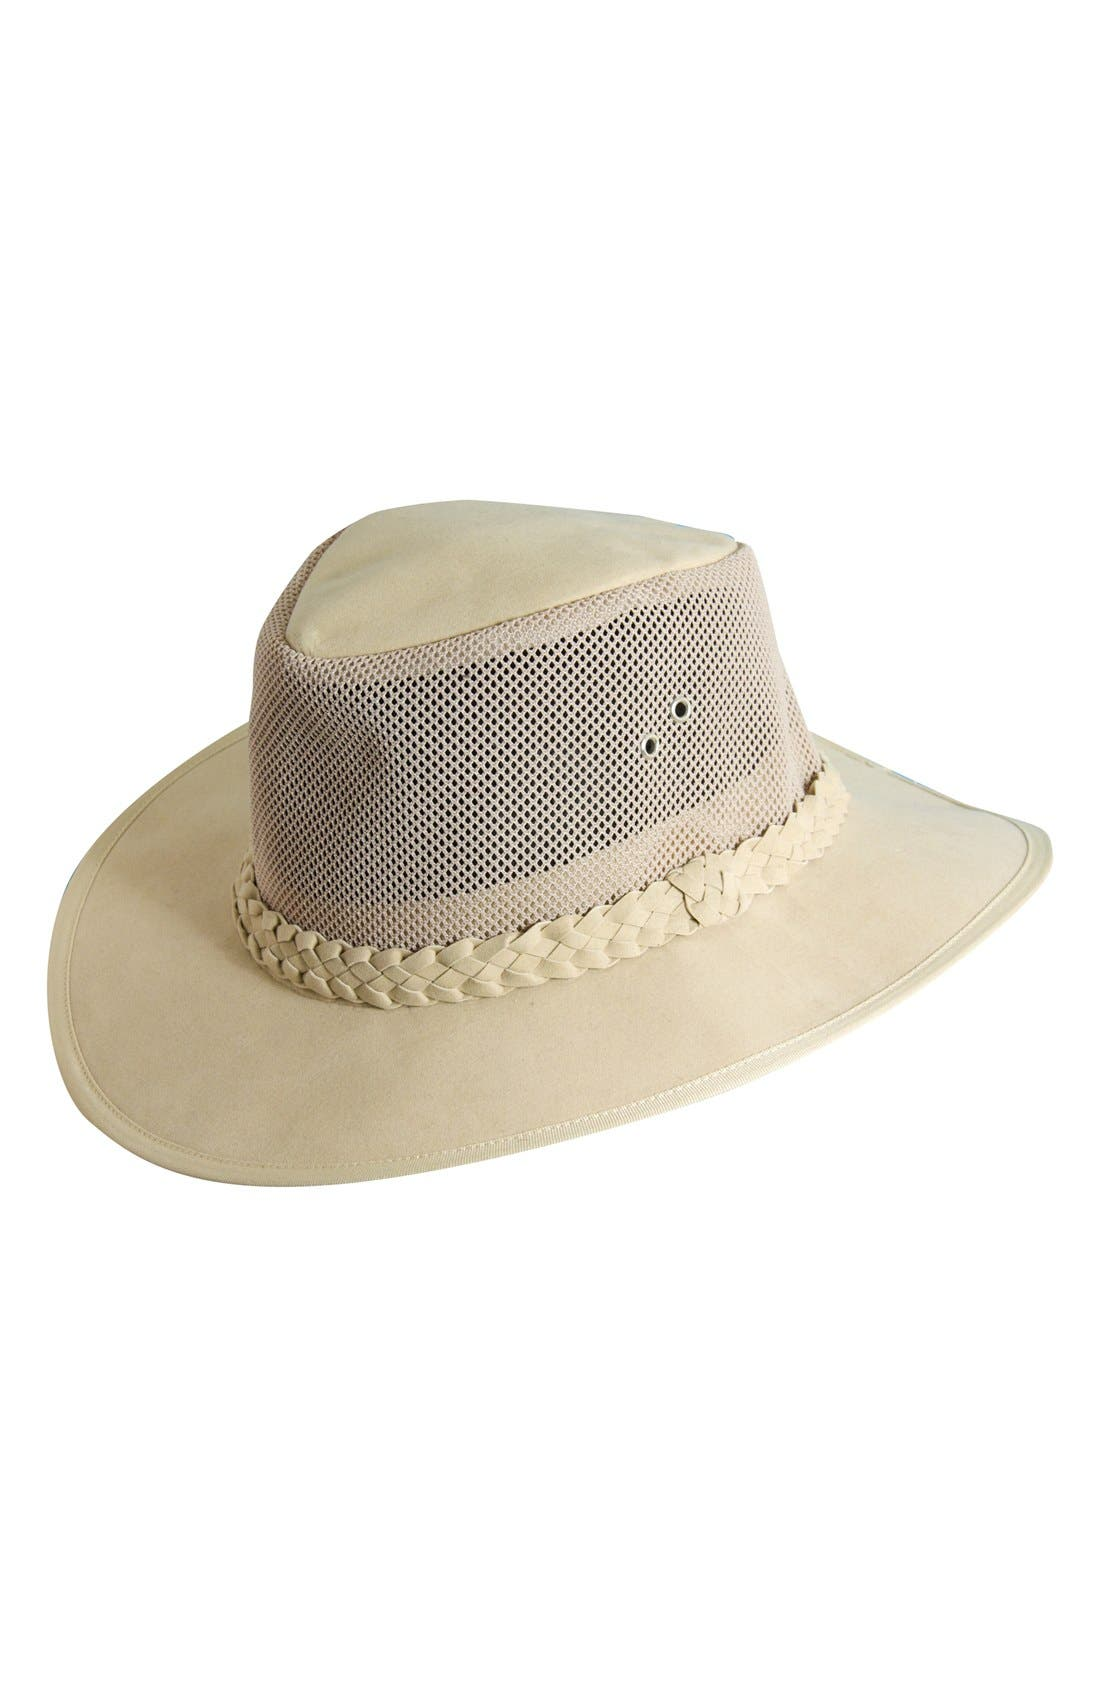 Alternate Image 1 Selected - Dorfman Pacific Soaker Hat